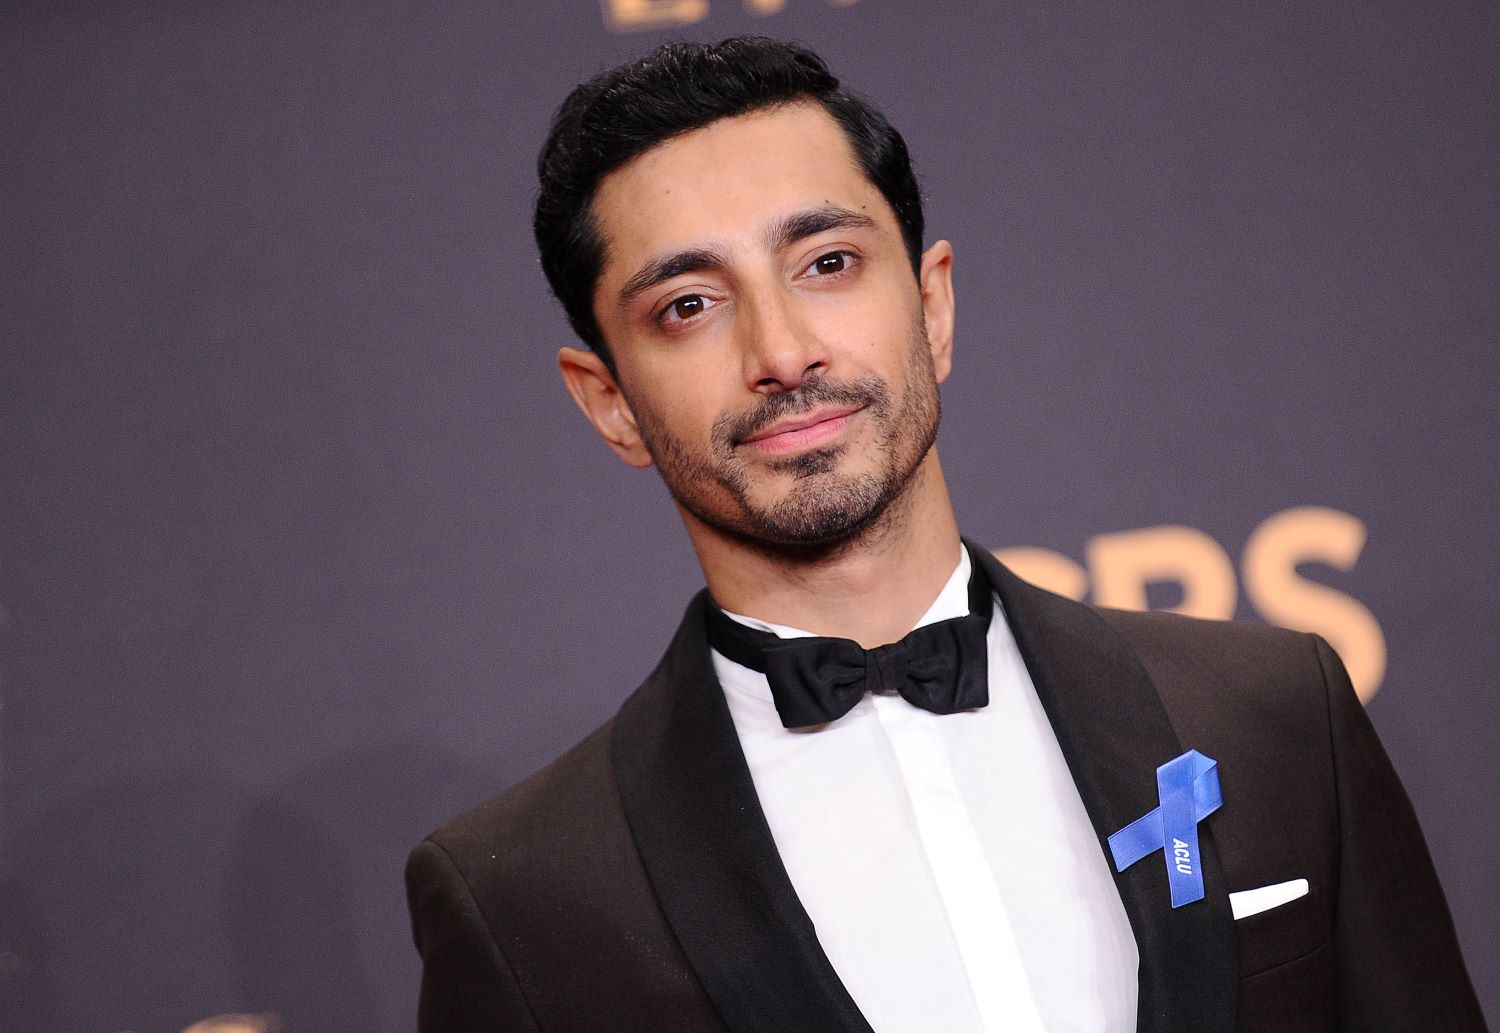 Riz Ahmed at the Emmys